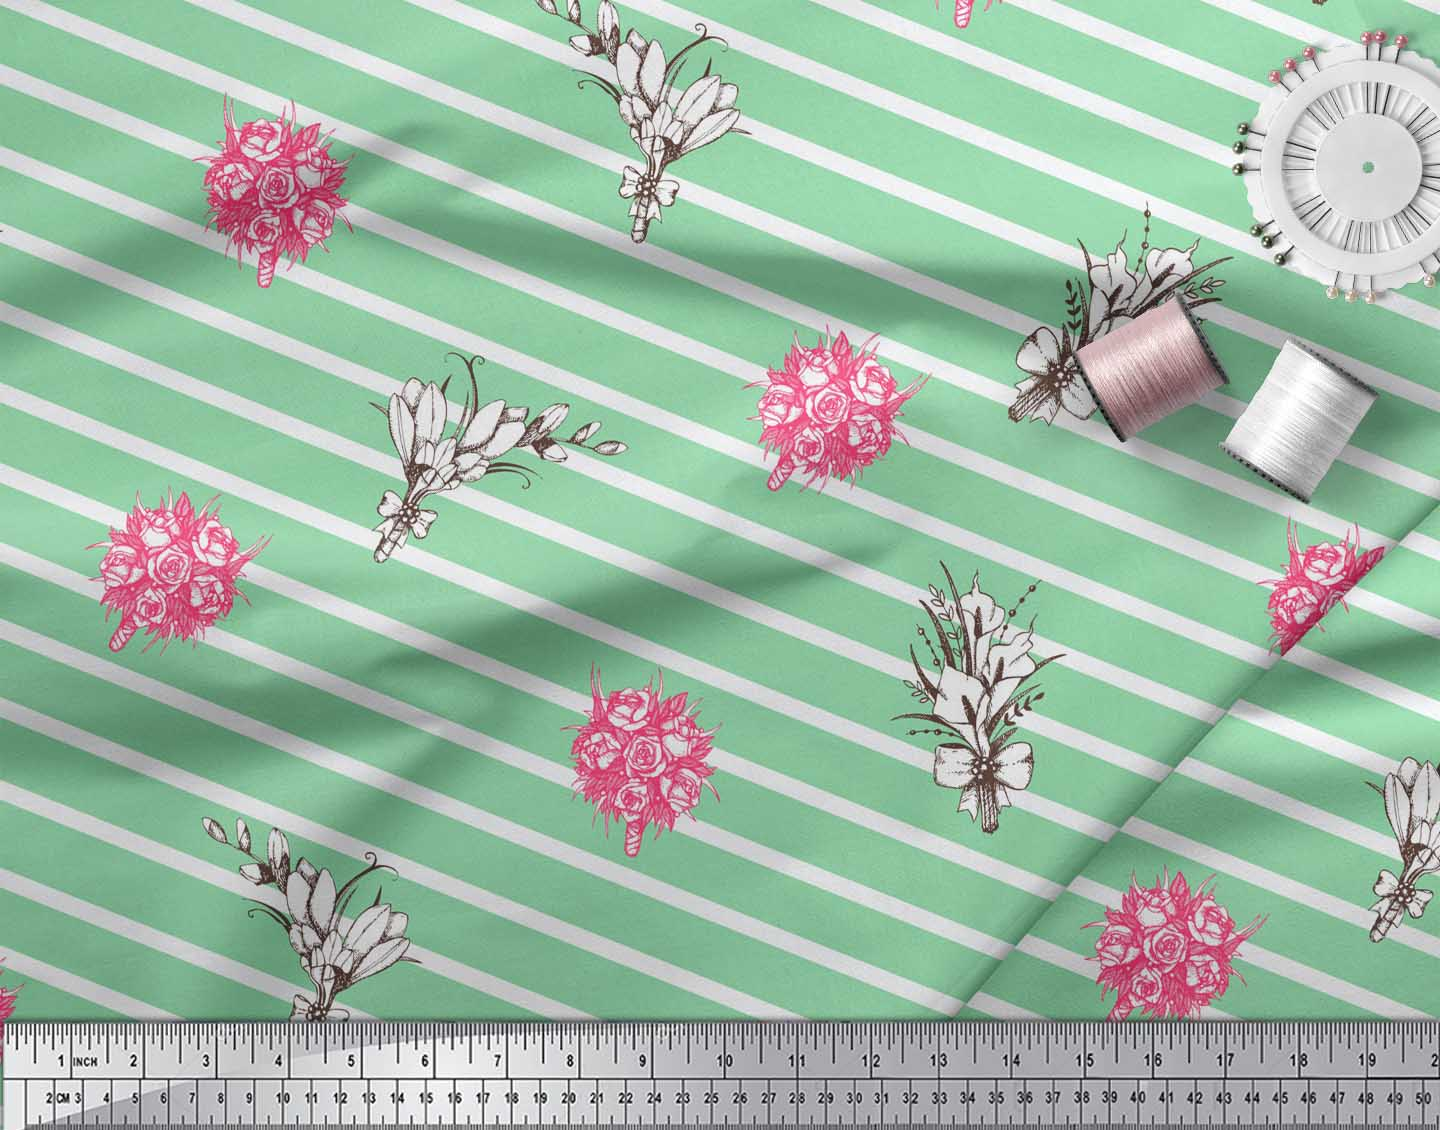 Soimoi-Green-Cotton-Poplin-Fabric-Stripe-amp-Rose-Bouquet-Floral-Decor-zIo thumbnail 4